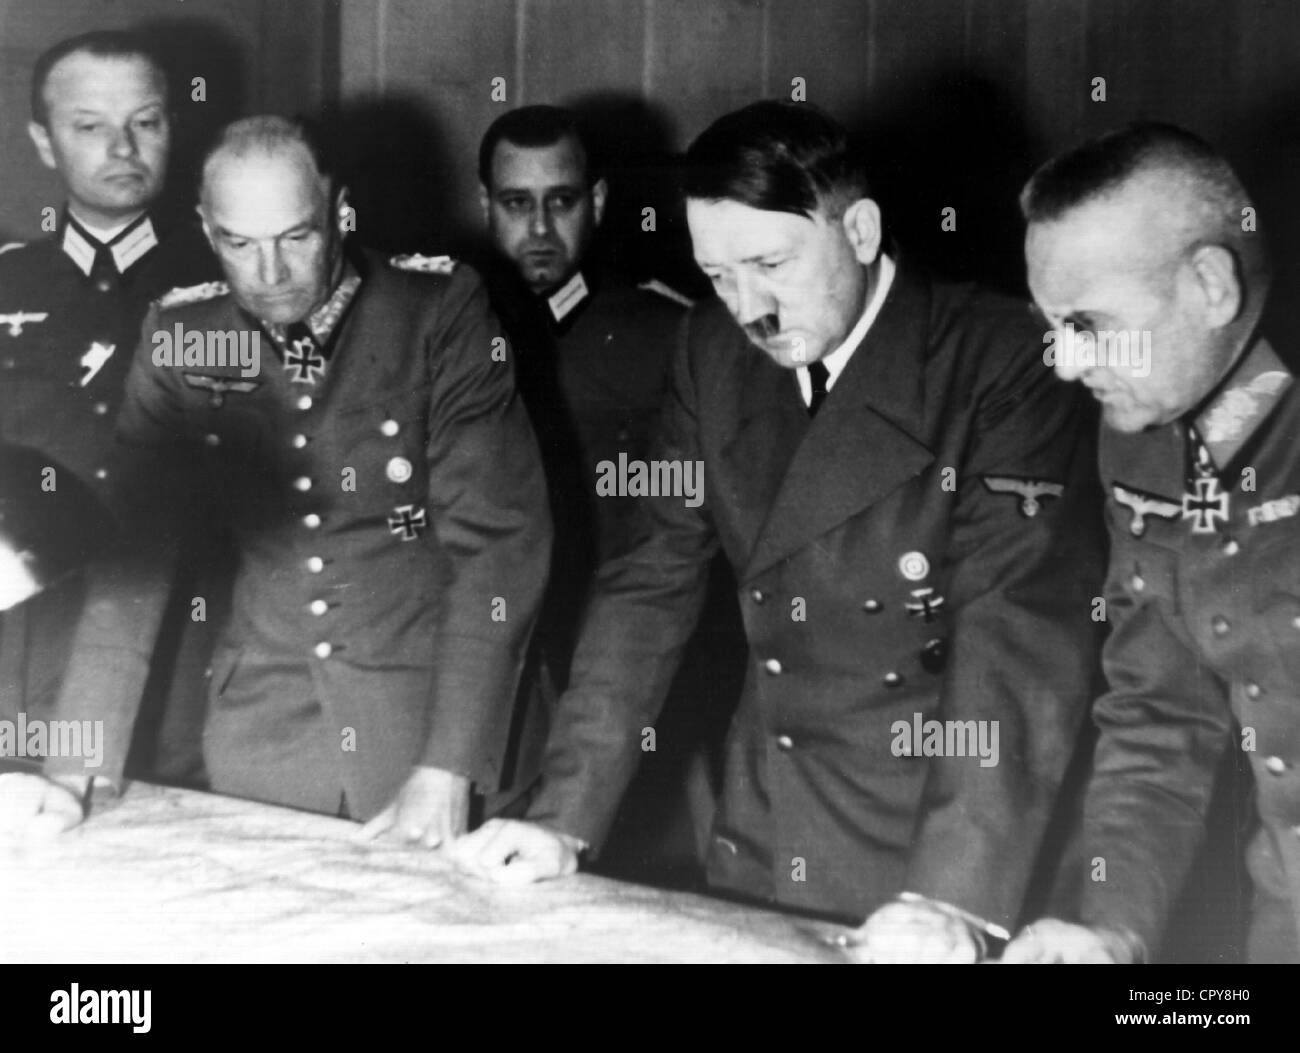 Hitler, Adolf, 20.4.1889 - 30.4.1945, German politician (NSDAP), Fuehrer and Reich Chancellor since 1933, half length, - Stock Image